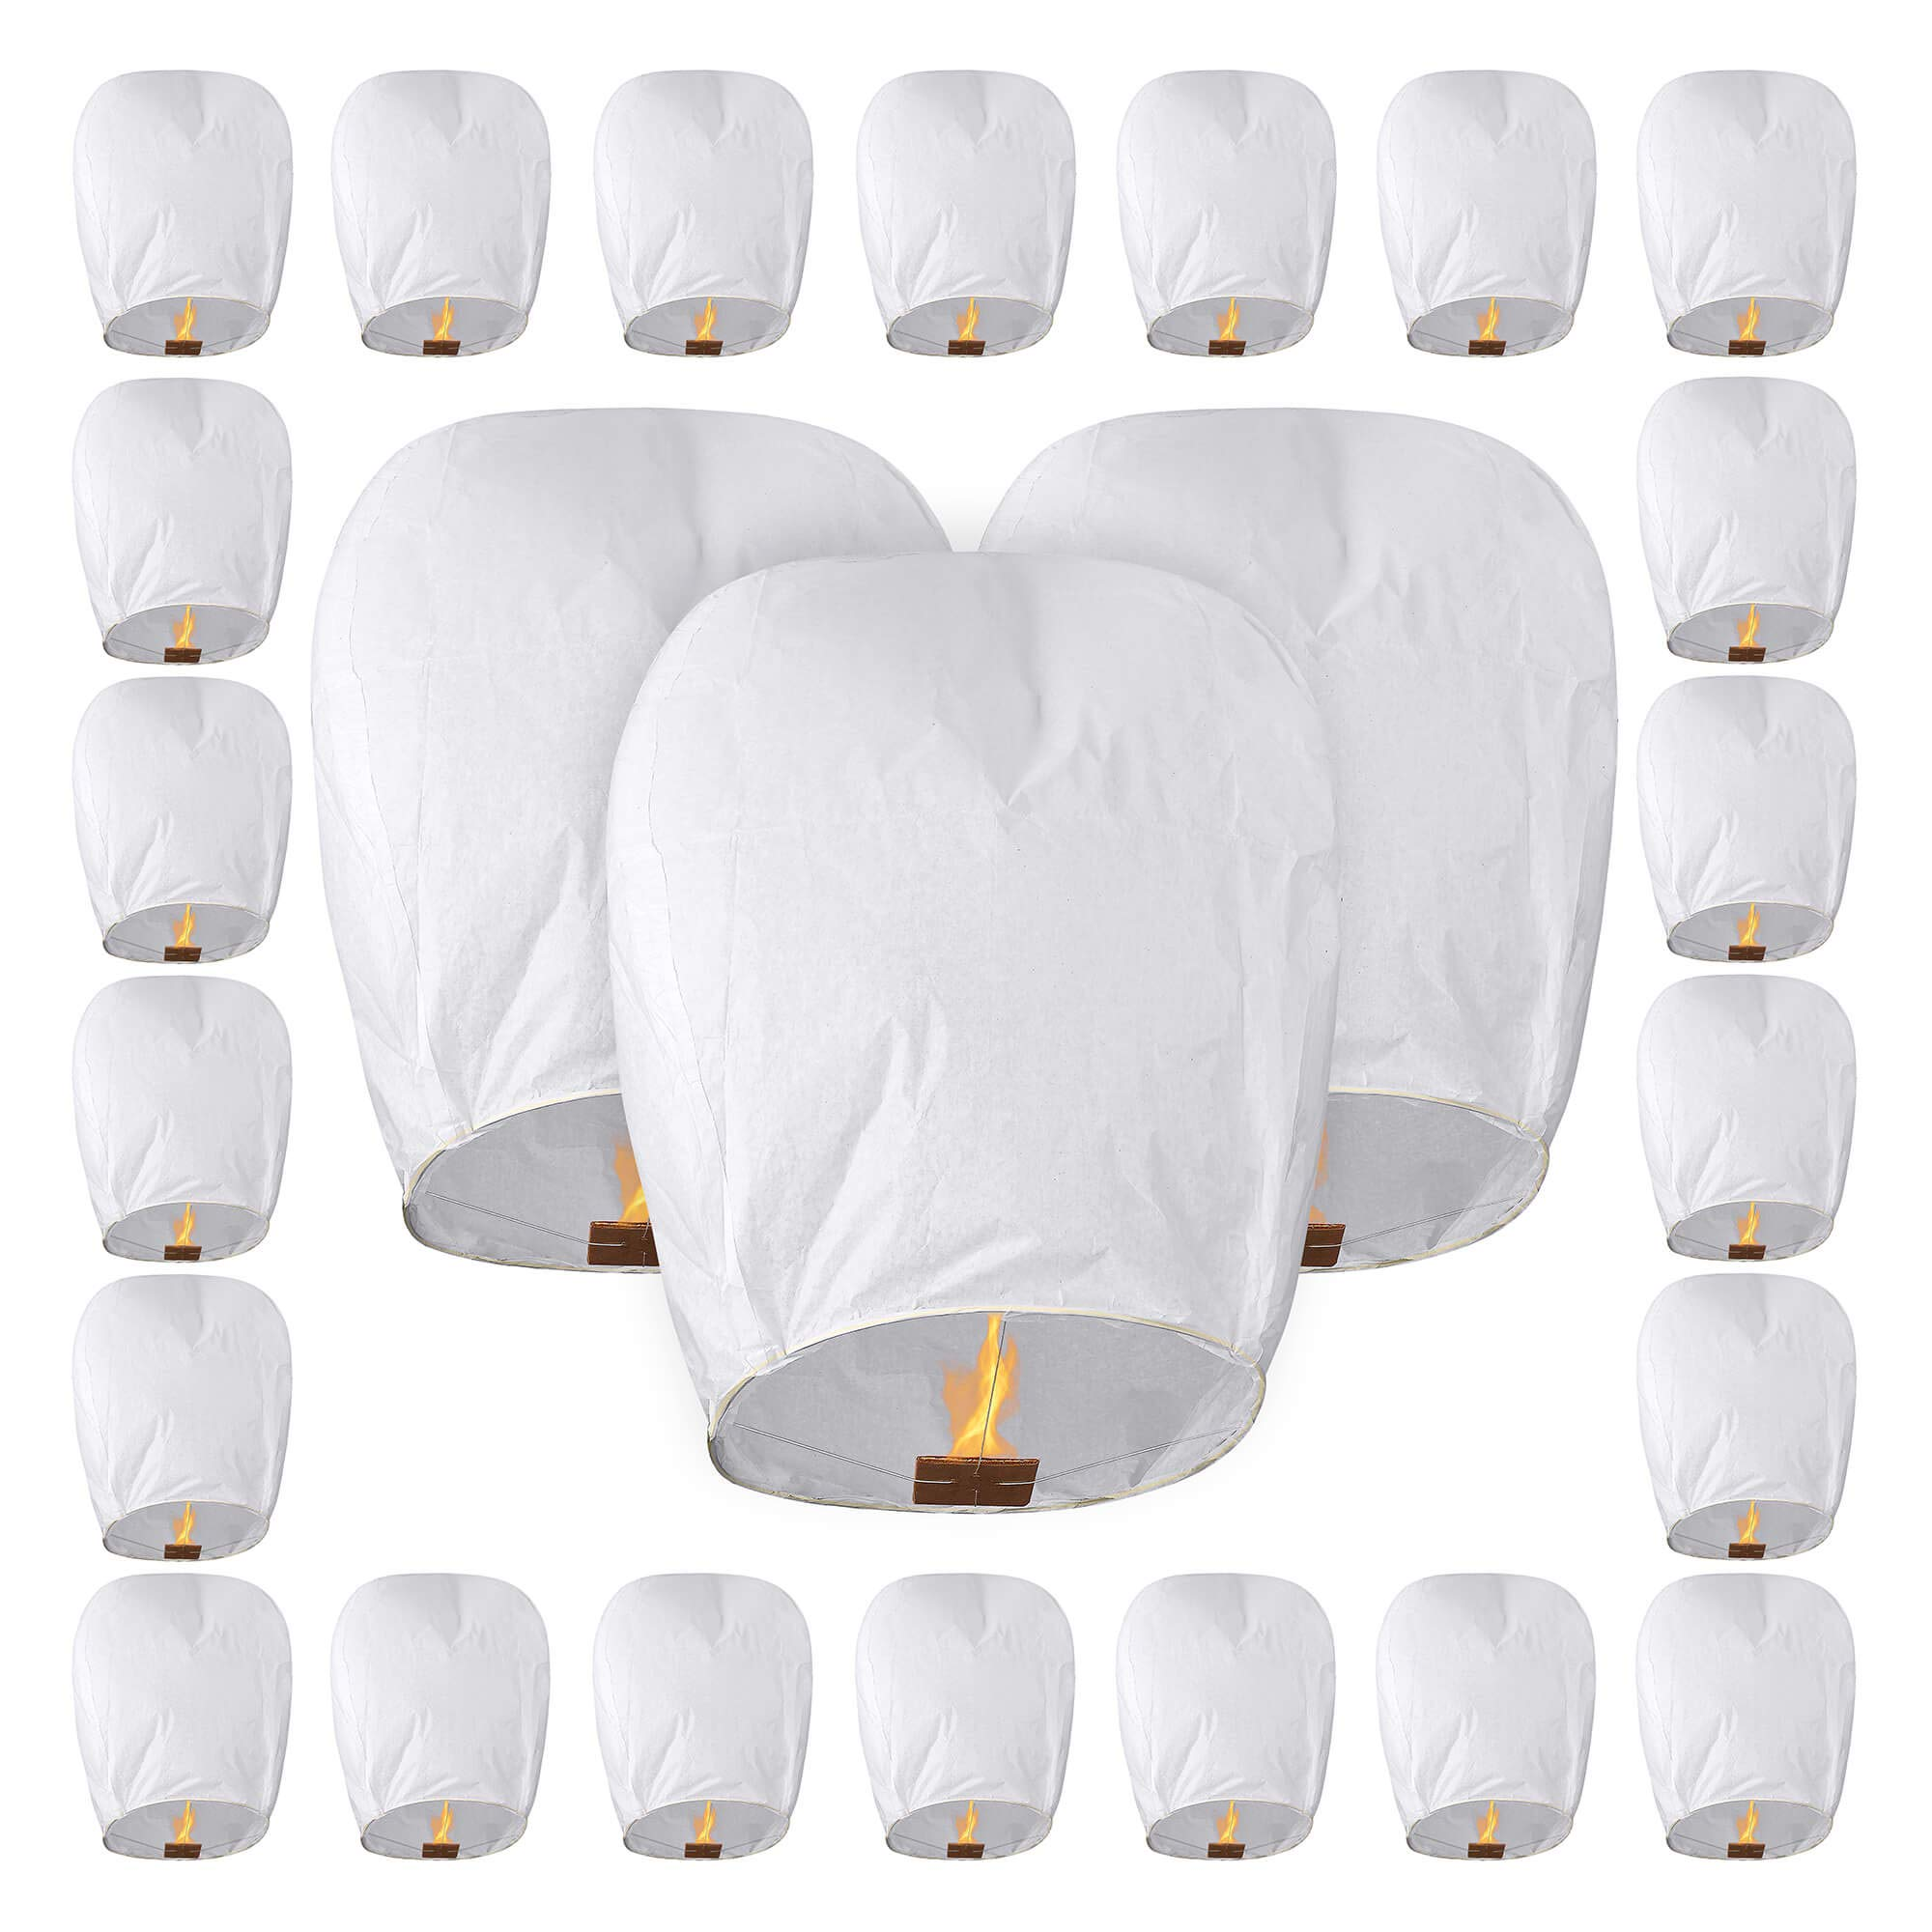 All Natural Shop Chinese Sky Lanterns - 25 Pack Eco Friendly Fully Assembled 100% Biodegradeable (Set of 25 White, Wire Free Paper Sky Lanterns) For Weddings, Birthdays, Memorials & More! by All Natural Shop